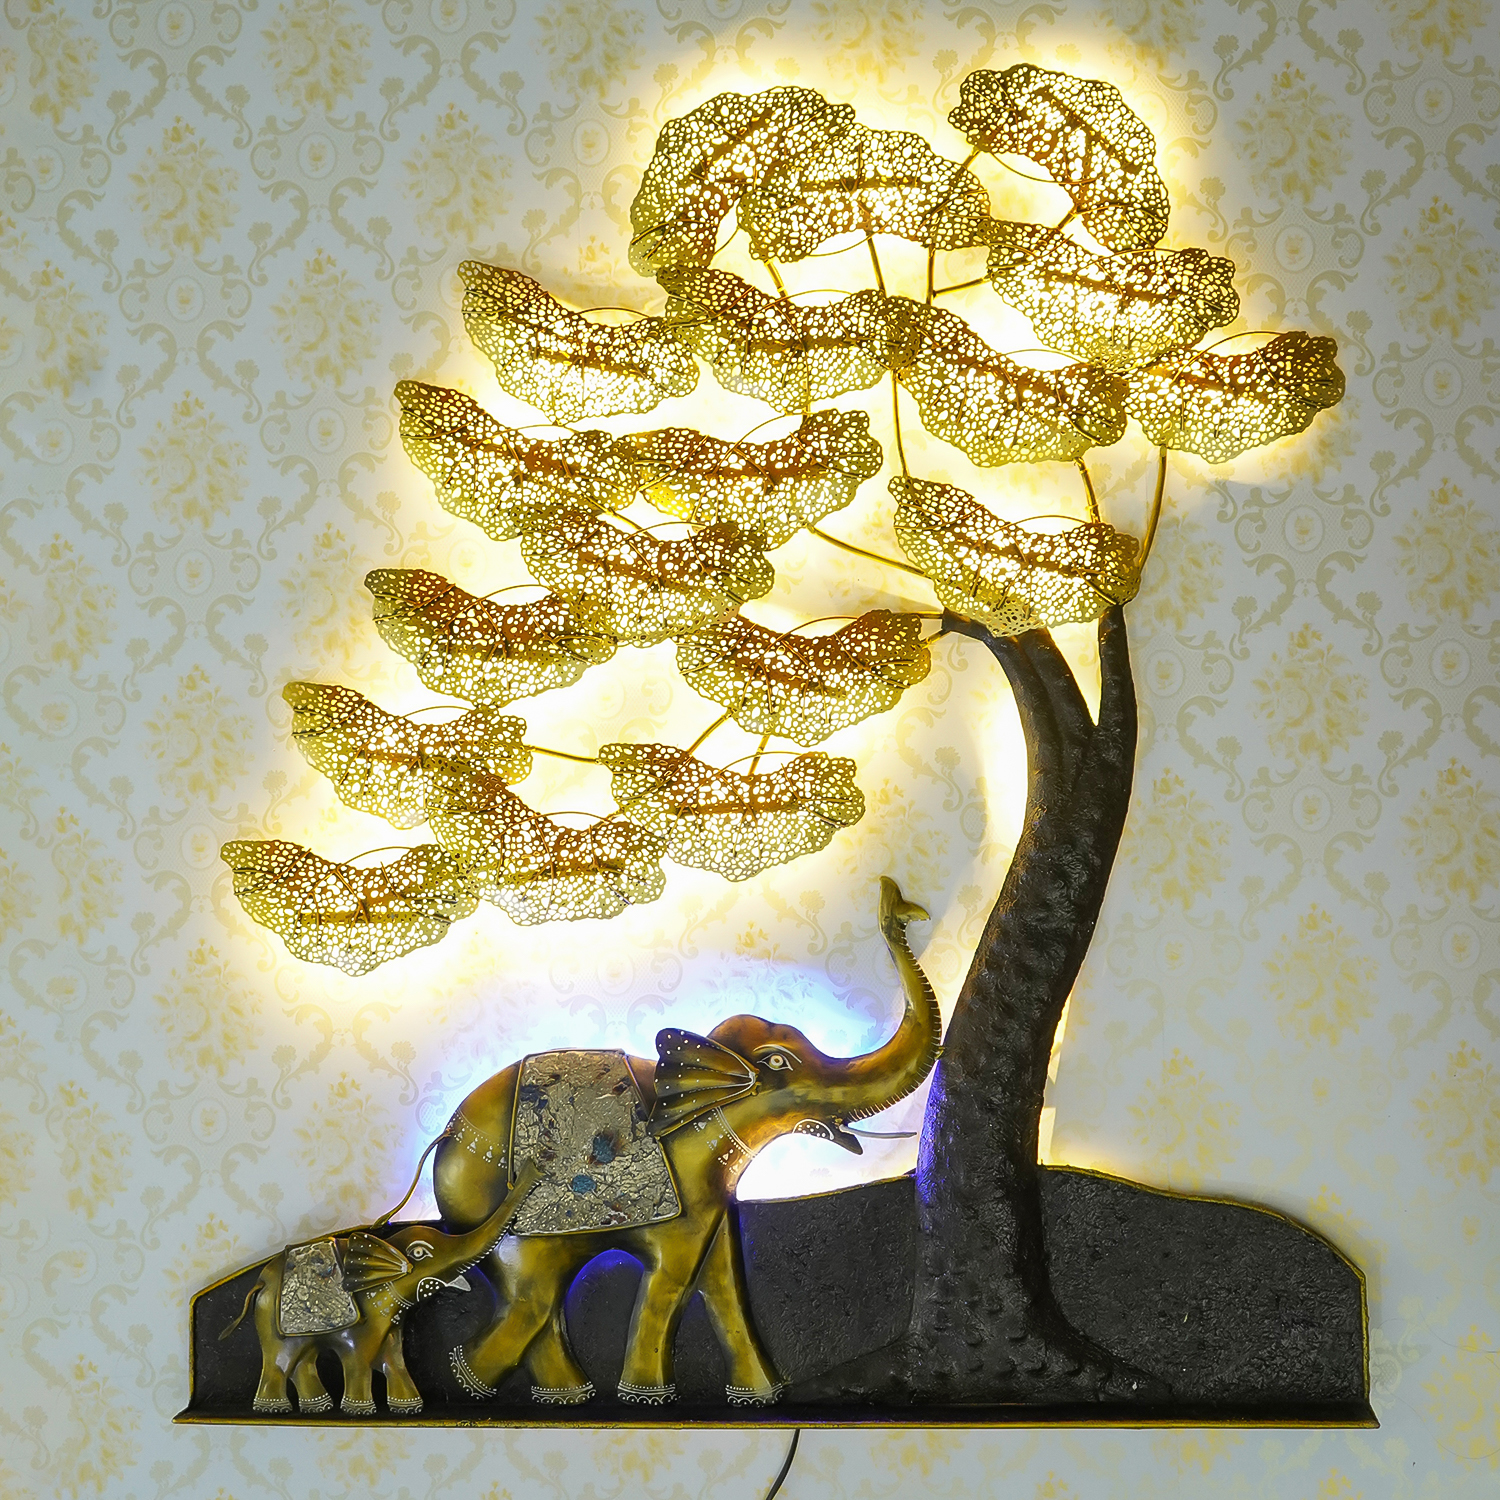 Elephant Family Under Golden Leaves Tree Handcrafted Iron Wall Hanging with background LEDs Indian Home Decor